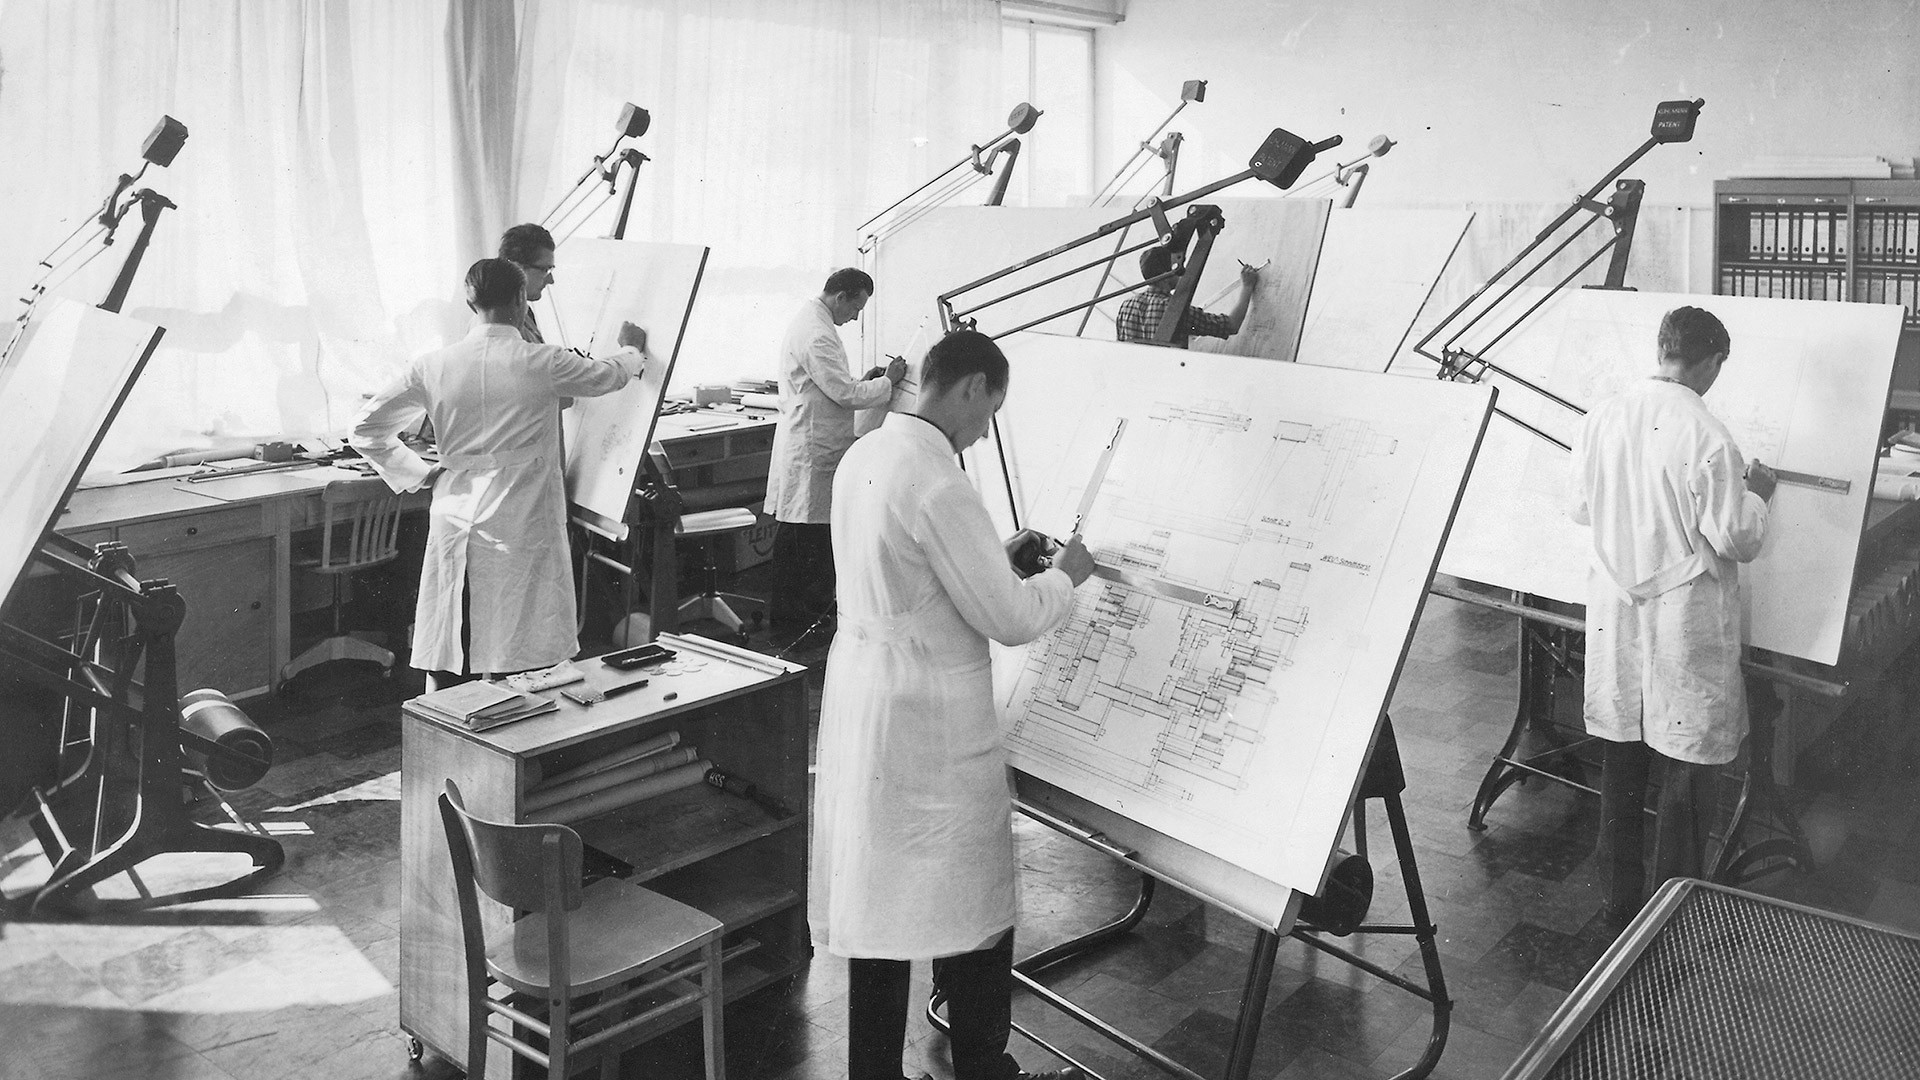 Students at Bosch Packaging drawing plans in black and white